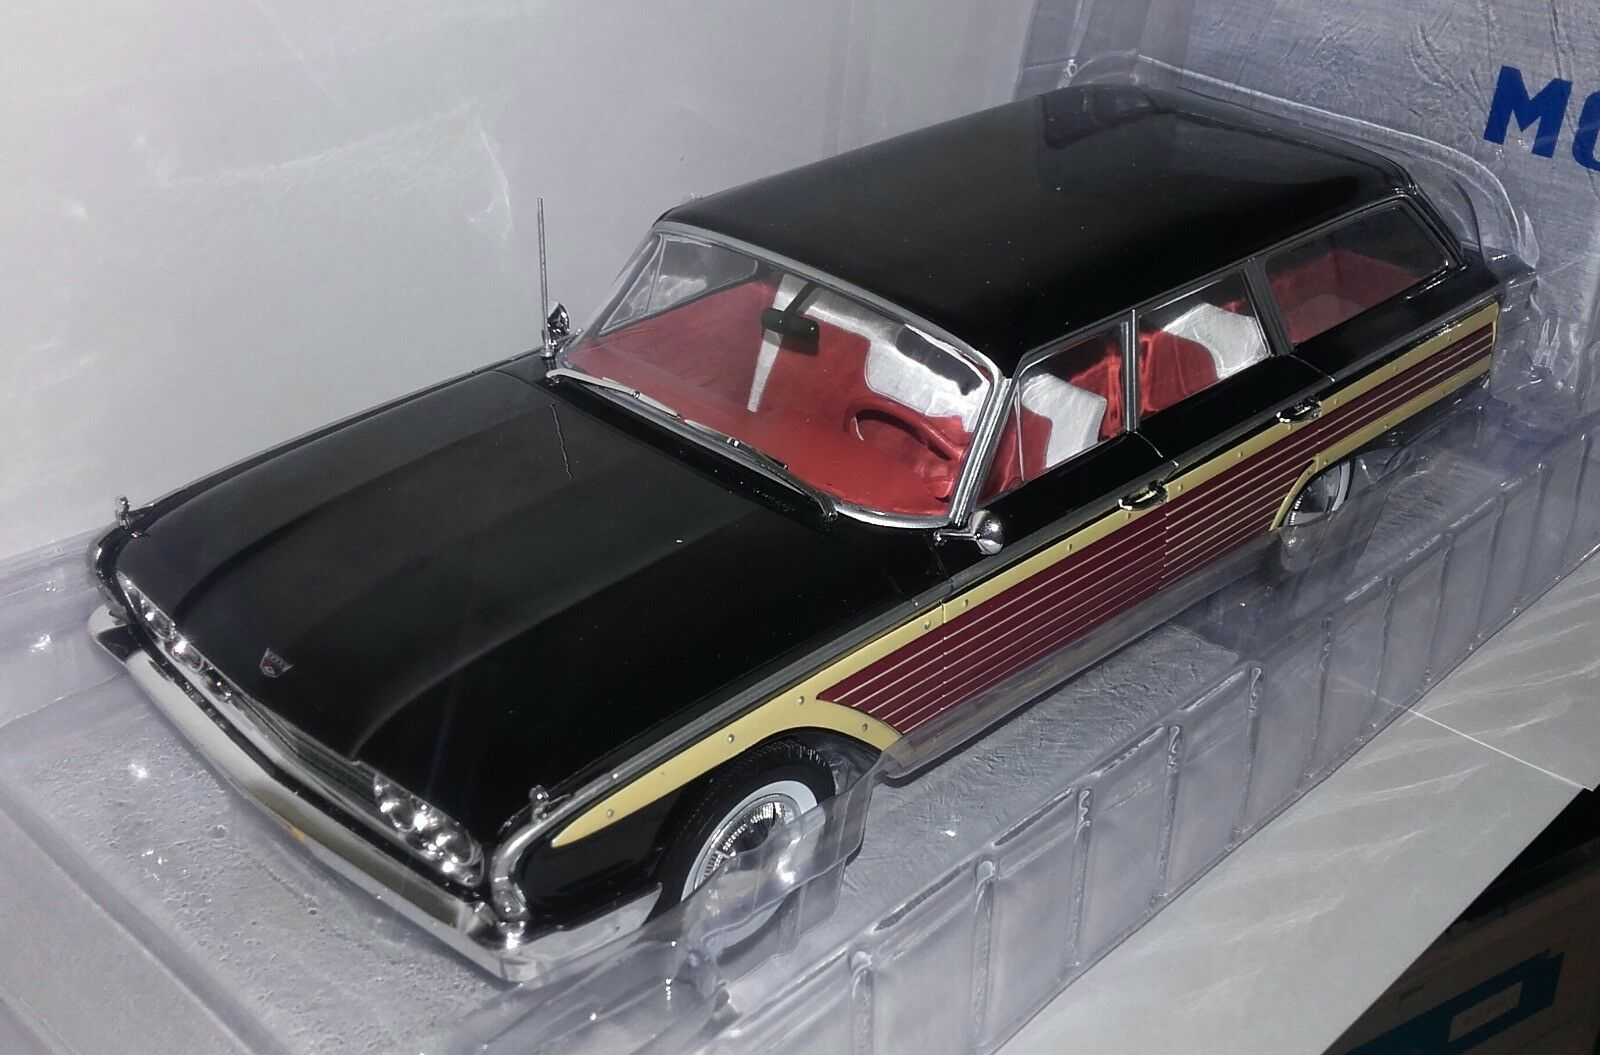 Model Car Group 1 18 Ford Country Squire nieuw in doos.